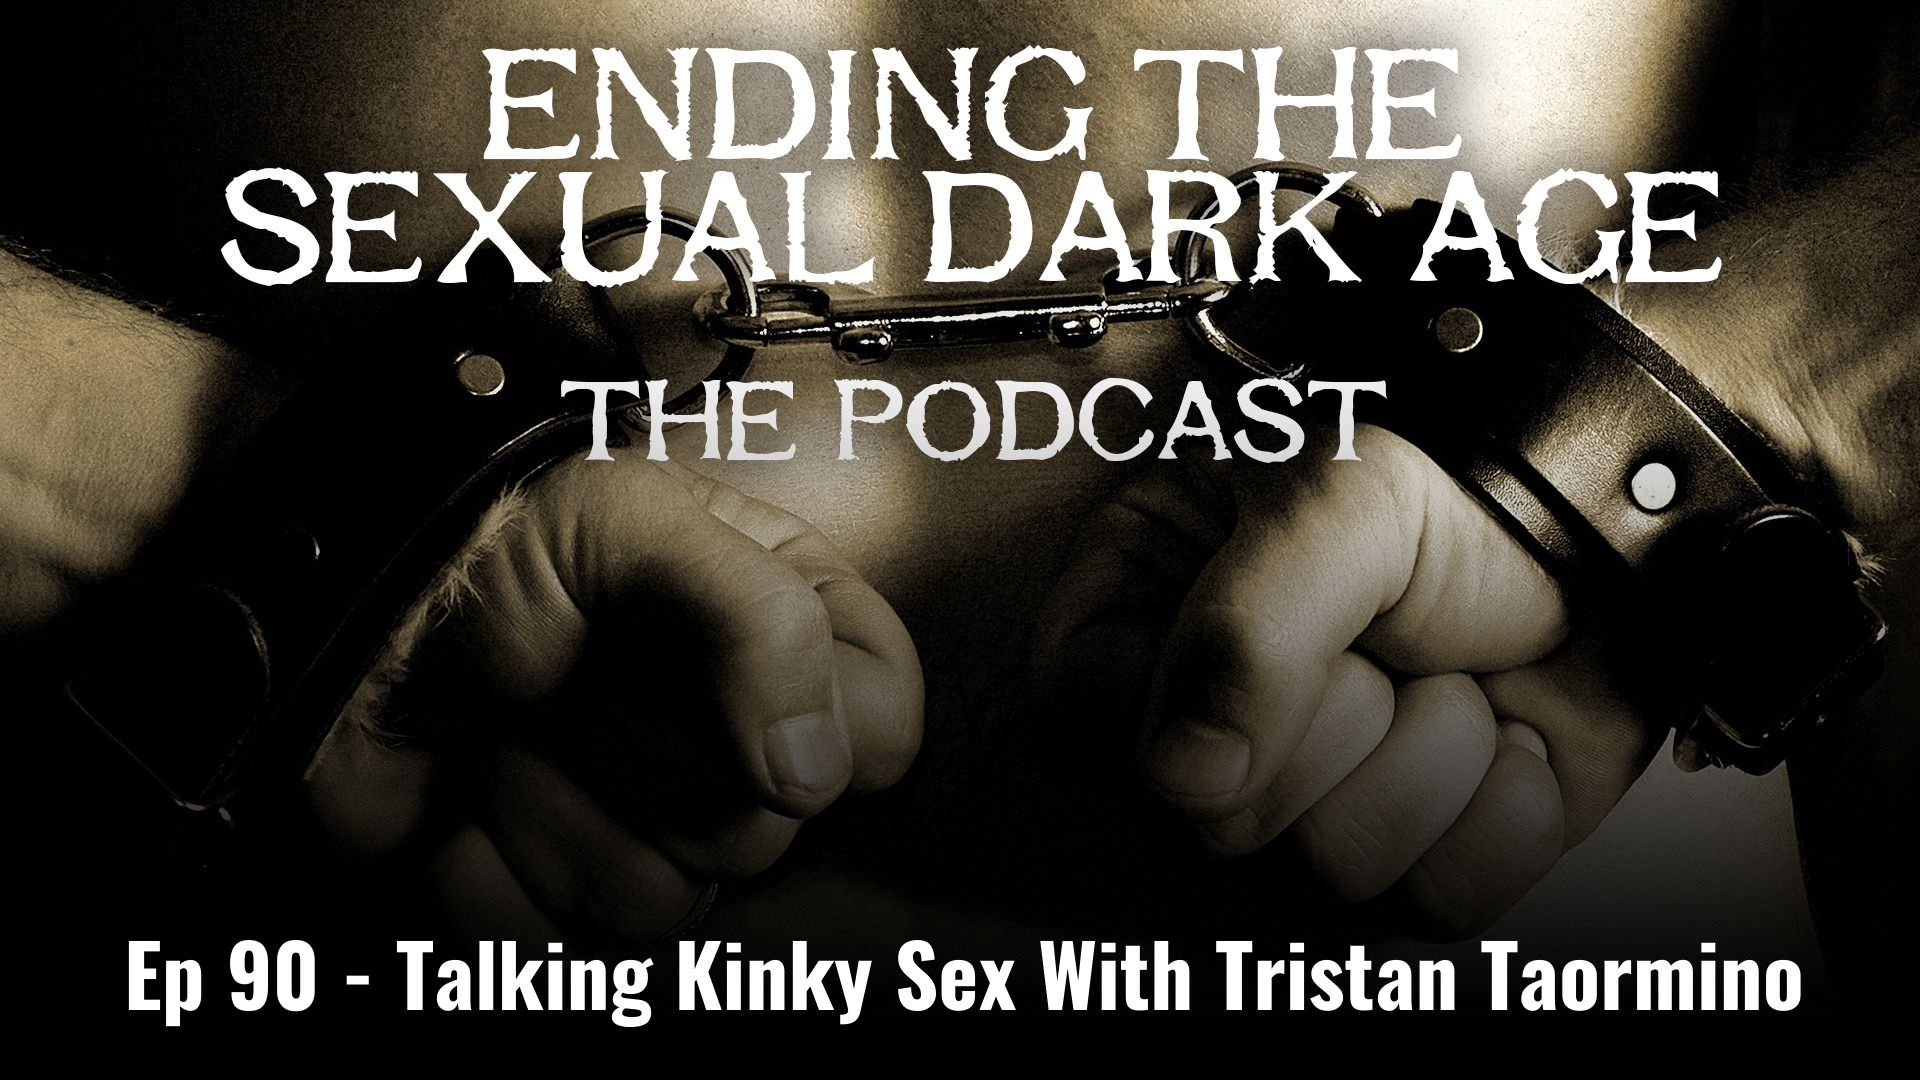 Episode 90 | Talking Kinky Sex With Tristan Taormino